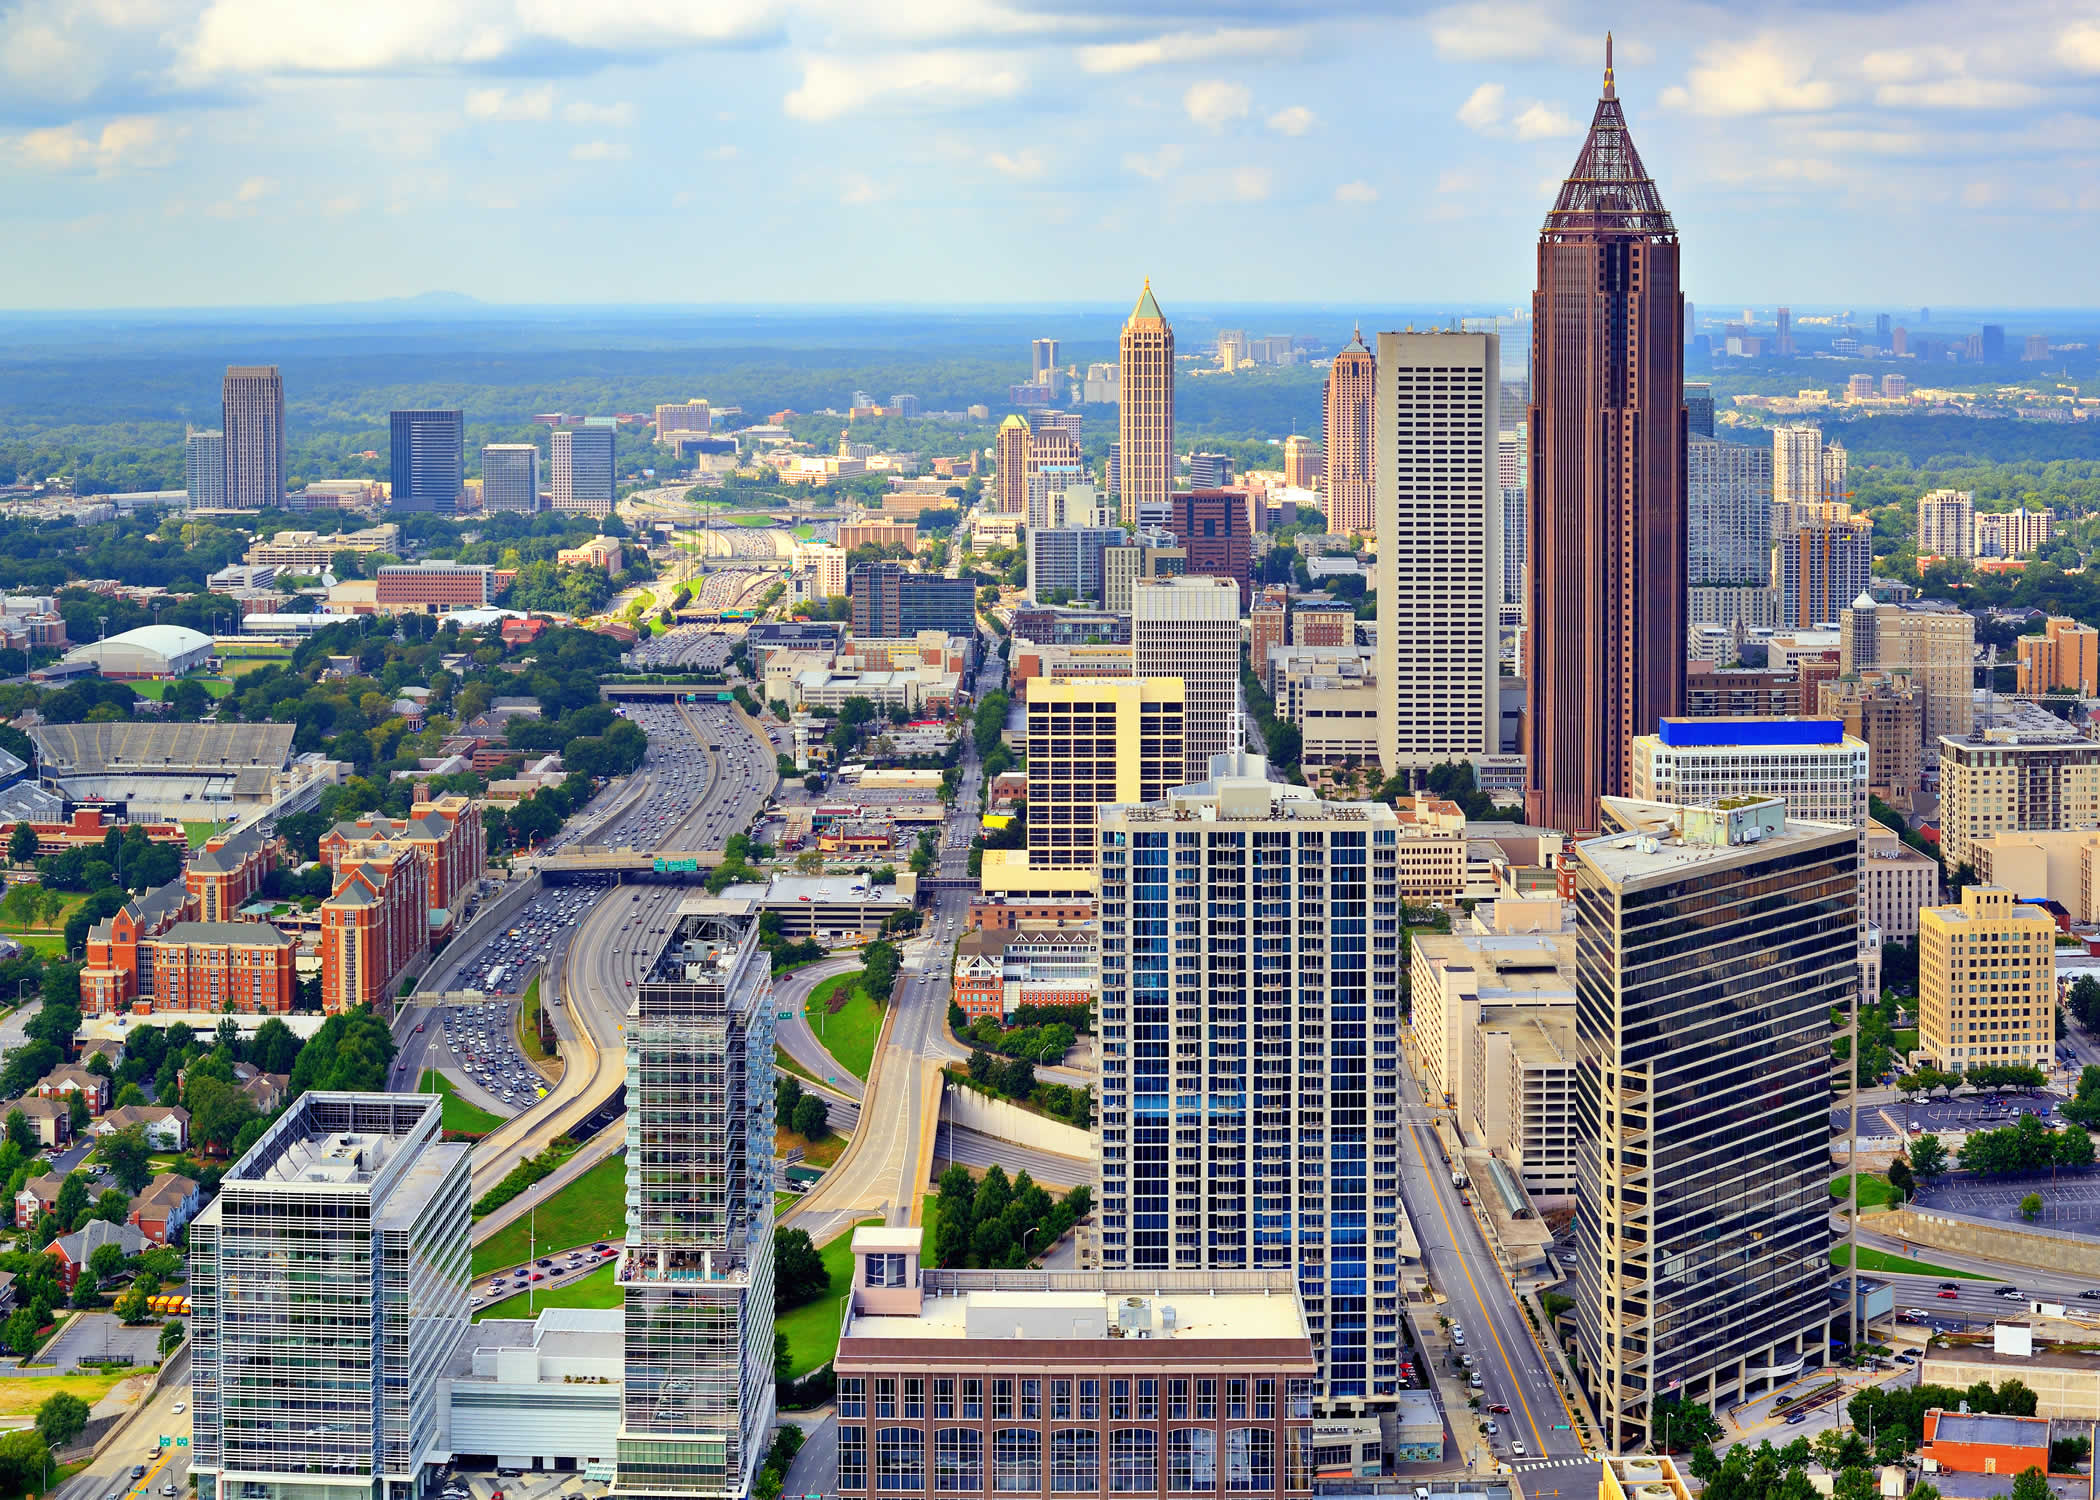 Capturing the When and Why in Applicant Dispositions- Friday June 8, 2018 - American Association for Access, Equity & Diversity Annual Conference - Atlanta, Georgia